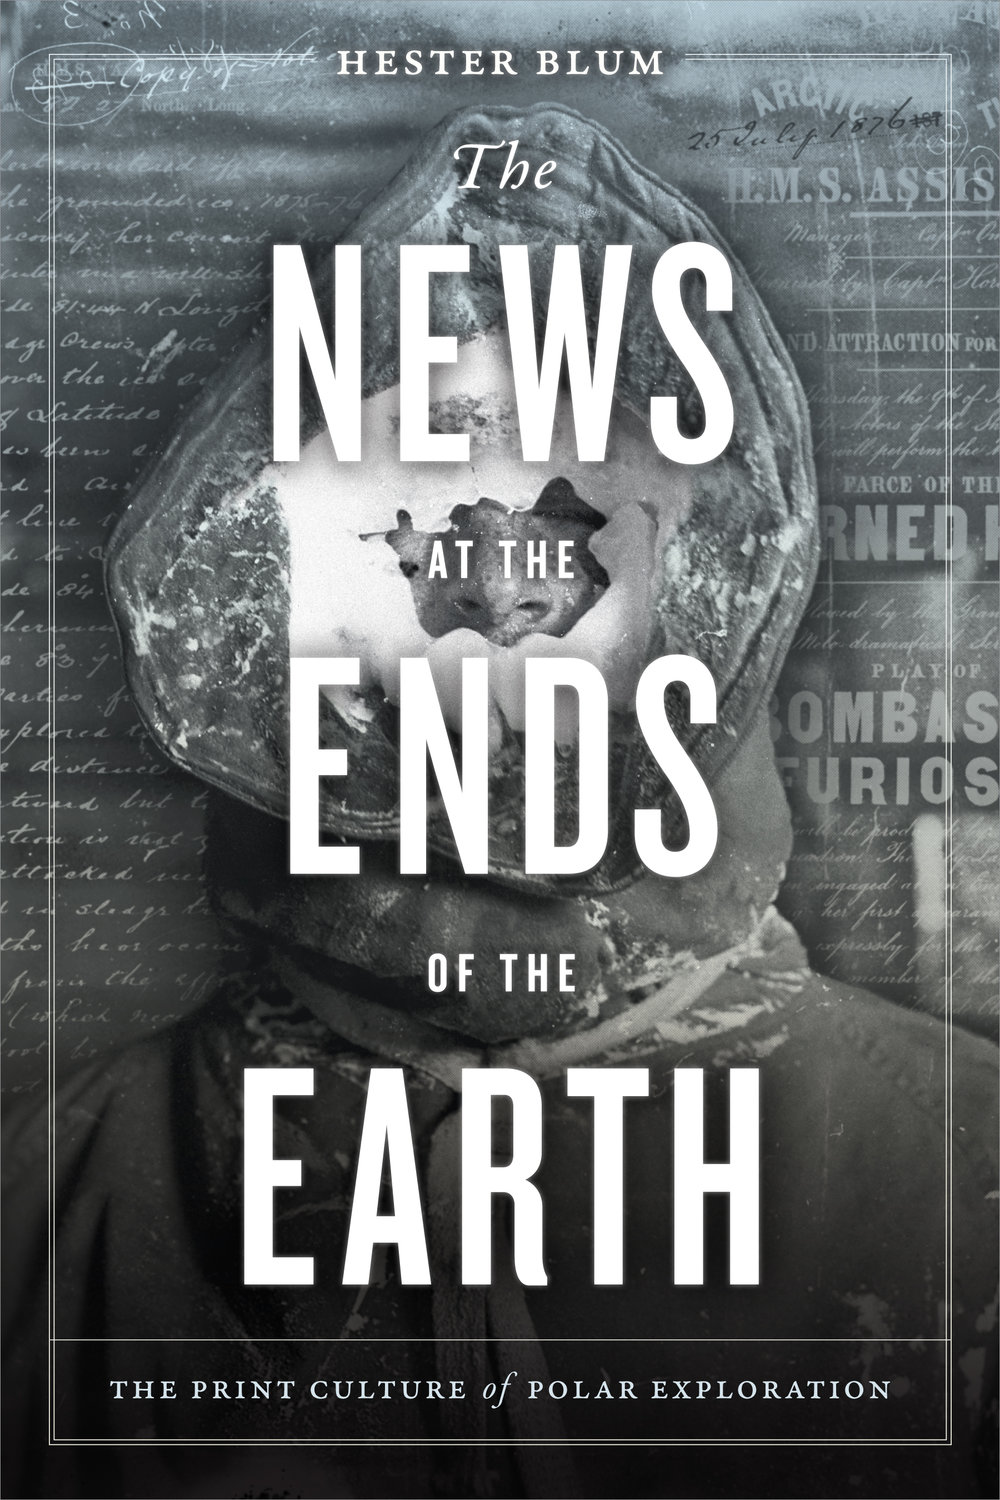 The News at the Ends of the Earth - The News at the Ends of the Earth: The Print Culture of Polar Exploration appeared from Duke University Press in 2019; it studies polar expeditionary newspapers and other forms of knowledge that circulate geophysical and climatic extremity, both in the age of polar exploration and in our current moment of climate change and polar resource extraction.For a 30% discount visit https://www.dukeupress.edu/the-news-at-the-ends-of-the-earth and use the coupon code E19BLUM.